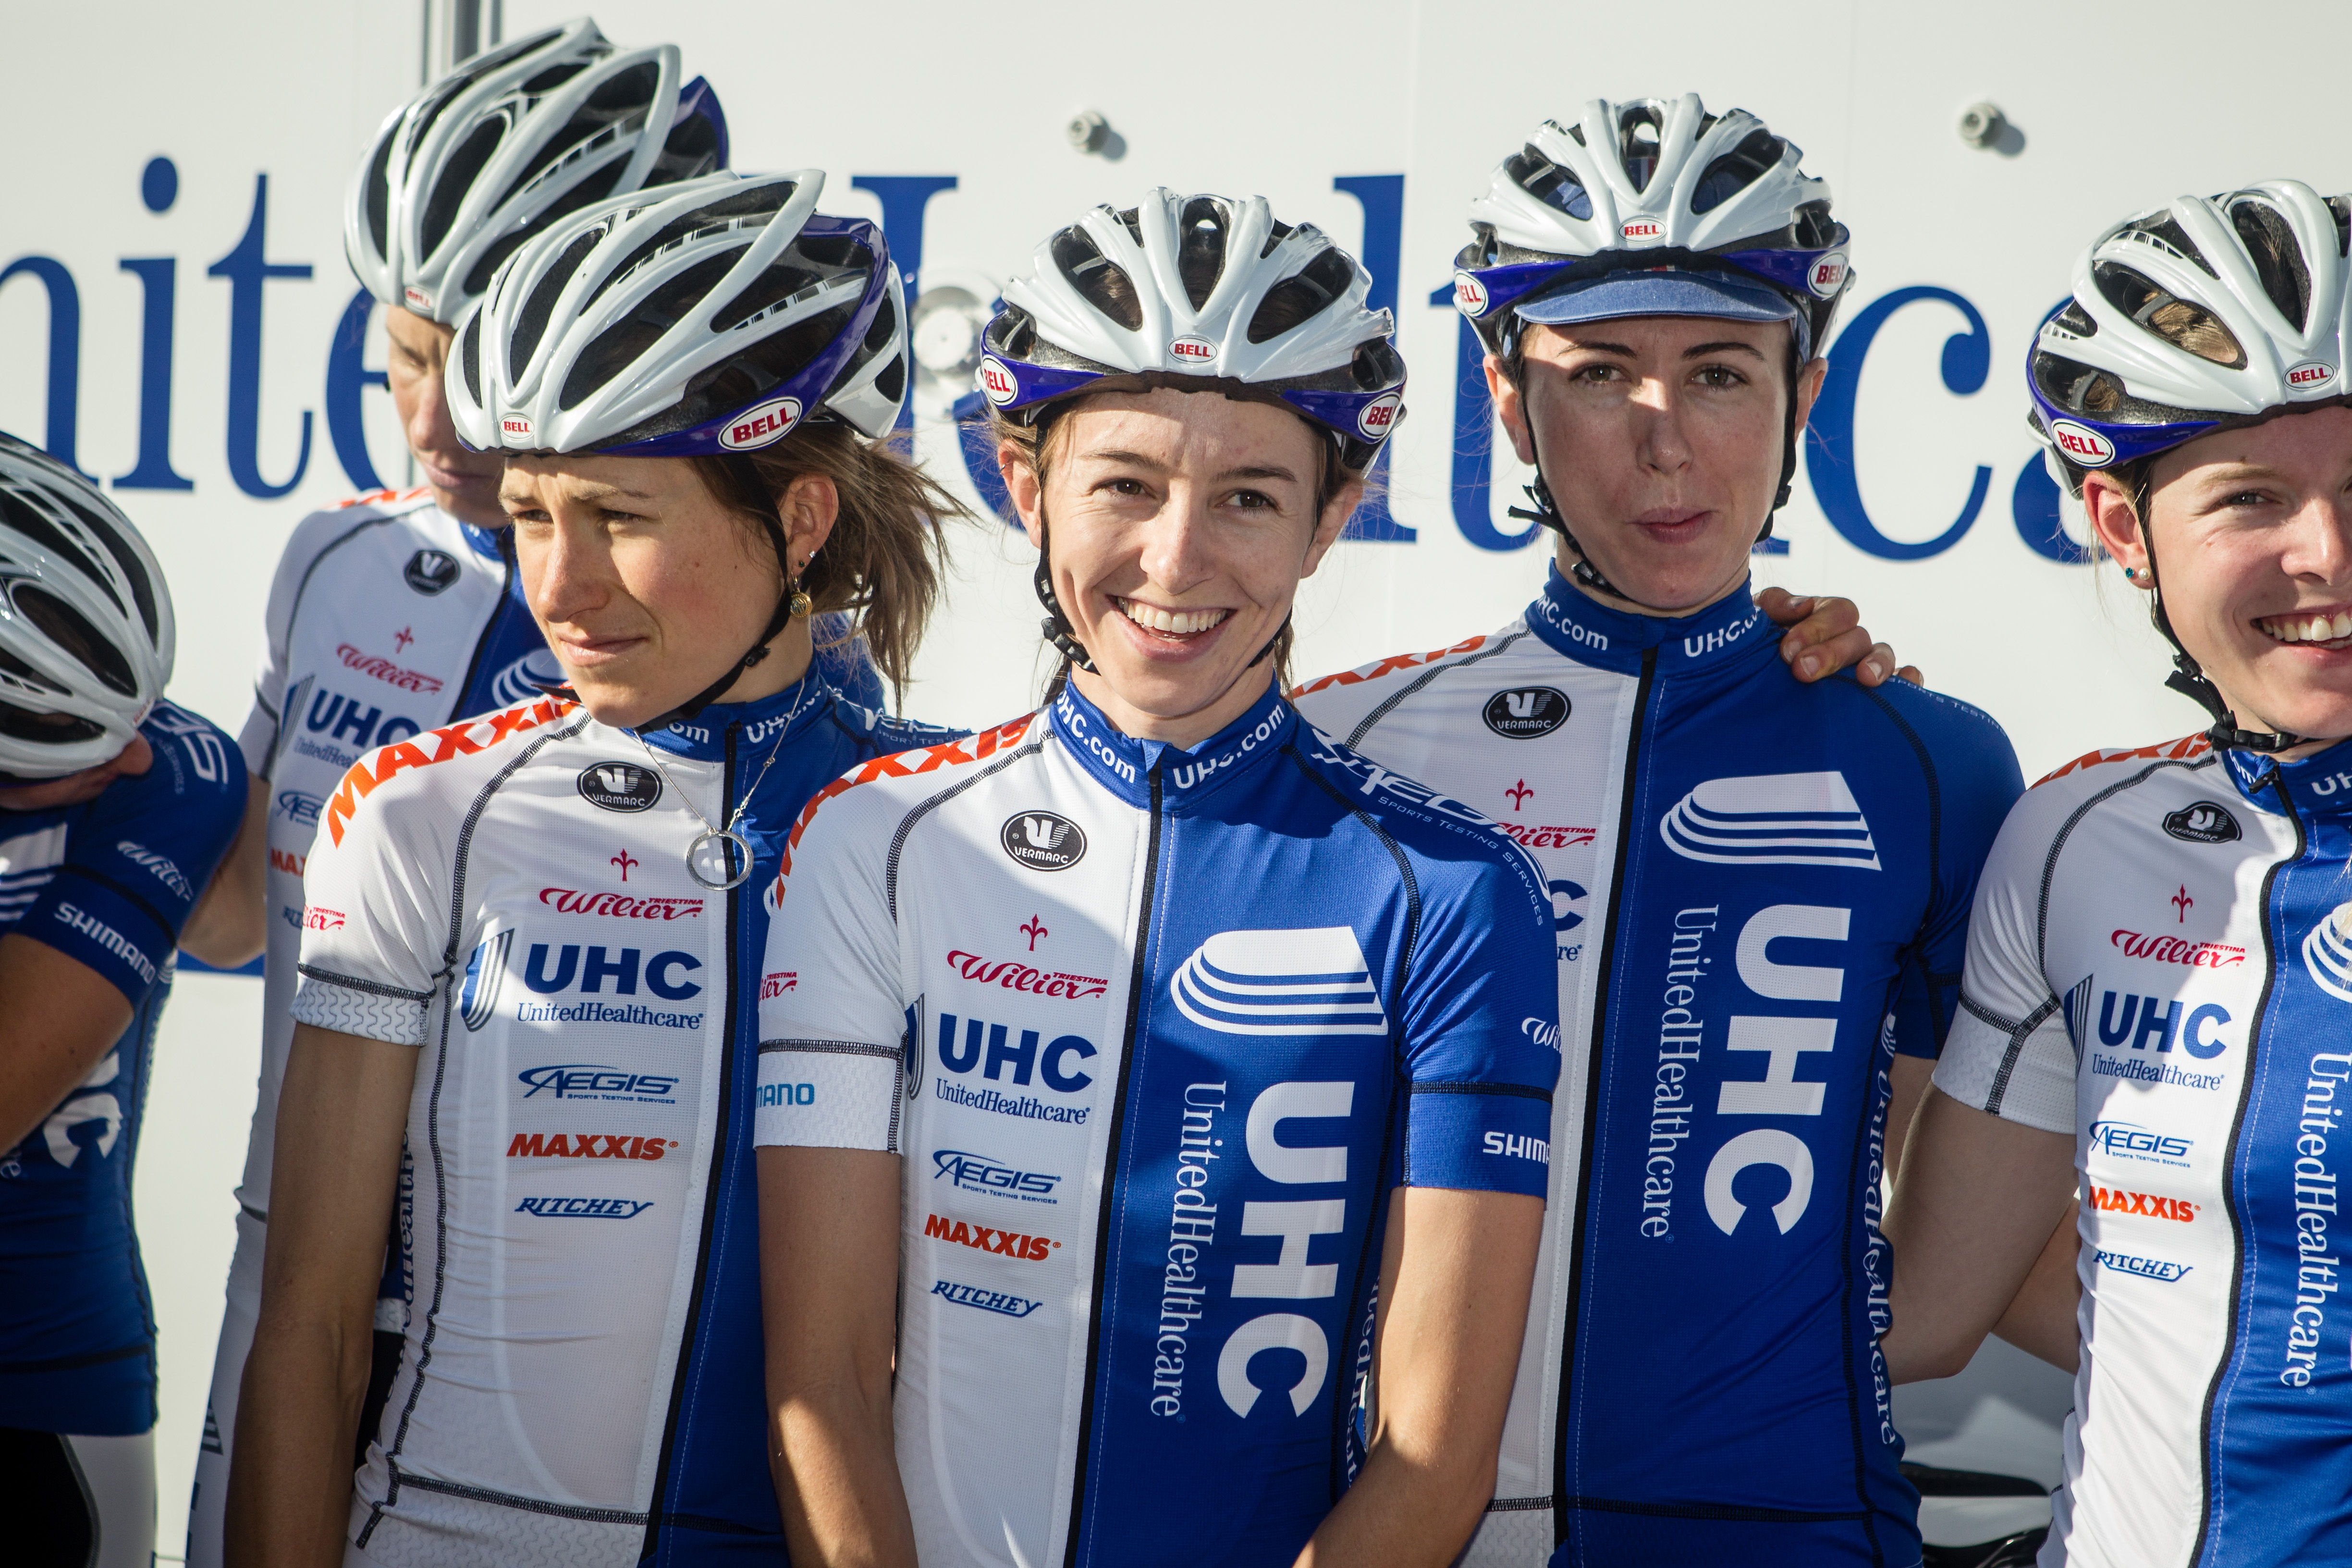 UnitedHealthcare Pro Cycling Team December 2013 training camp.